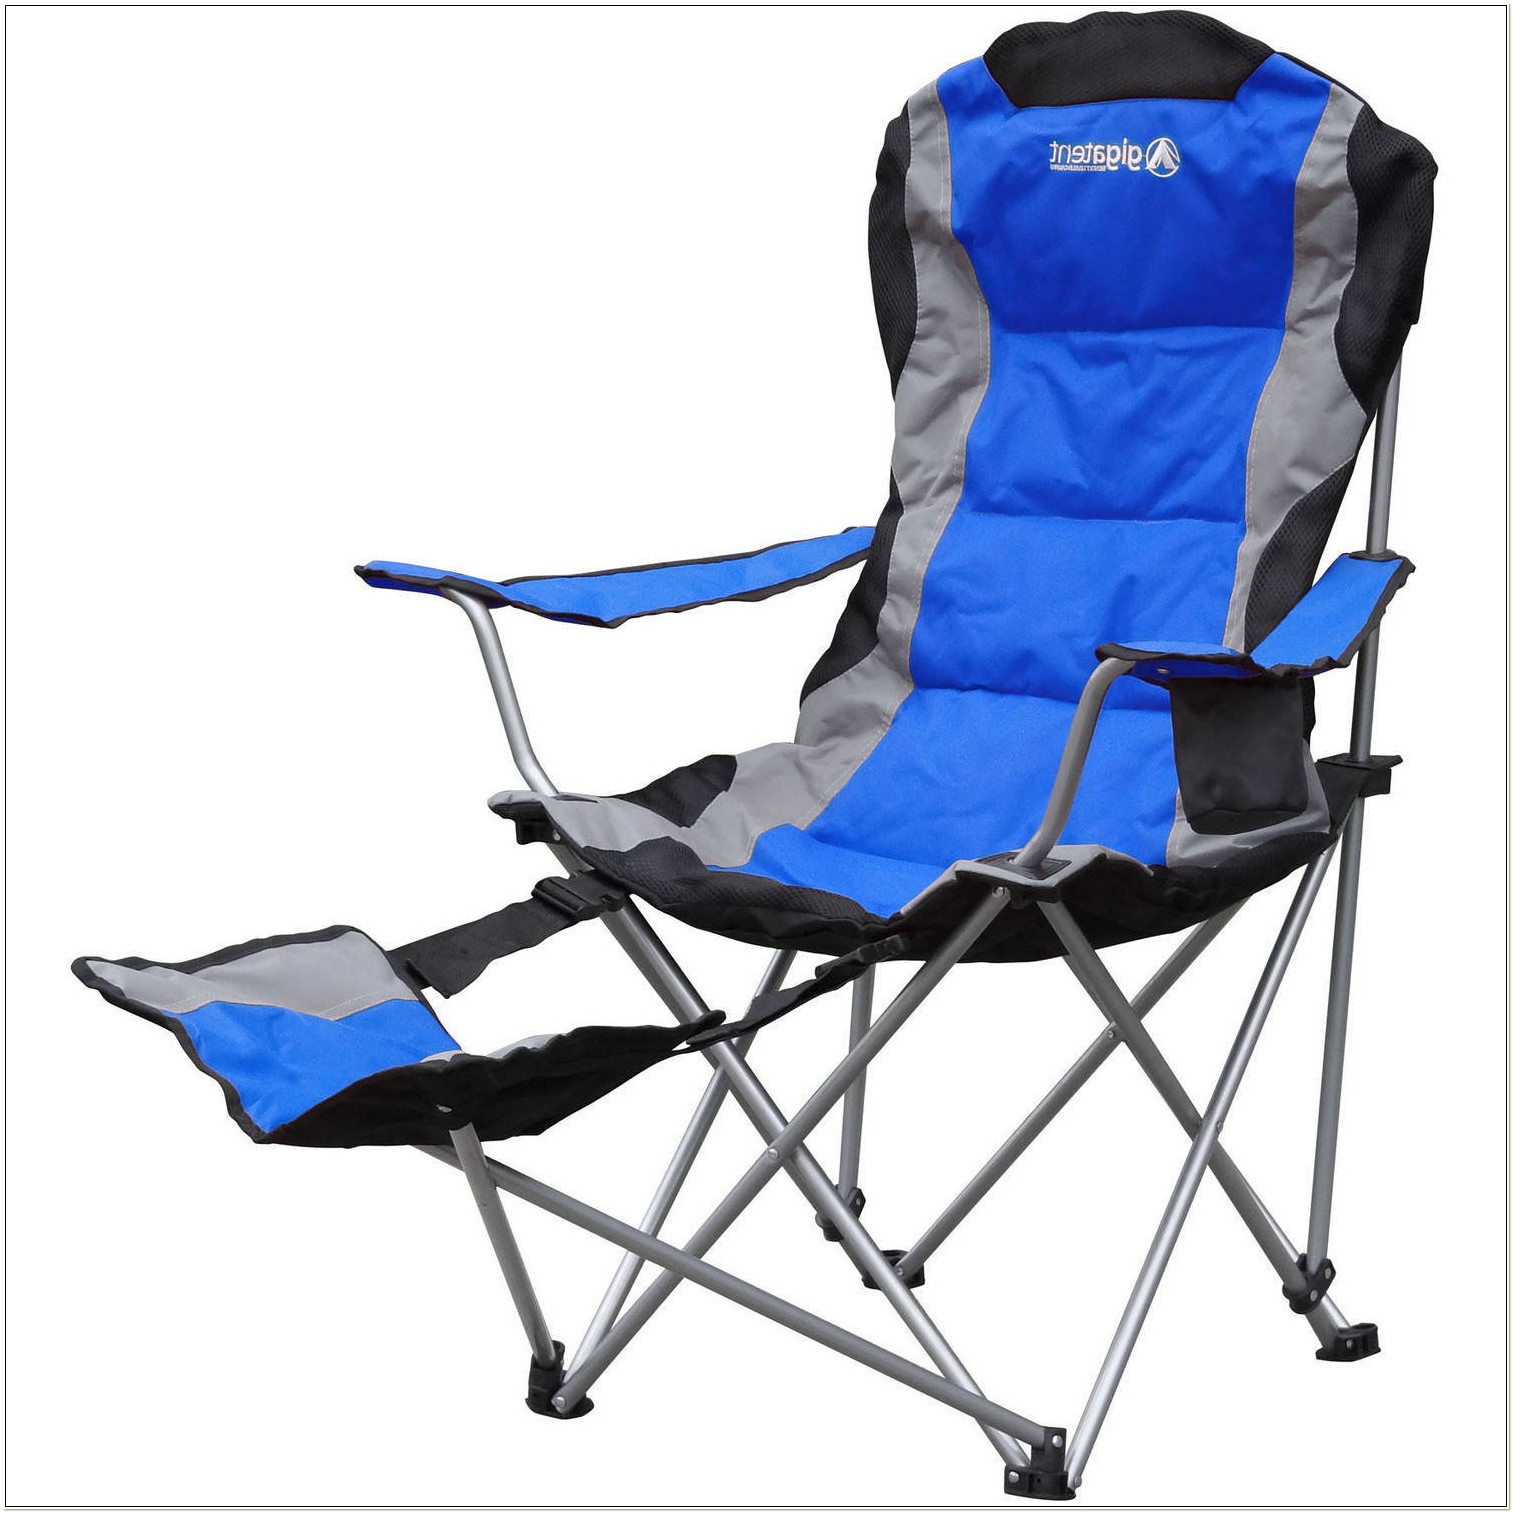 Portable Lawn Chair With Footrest